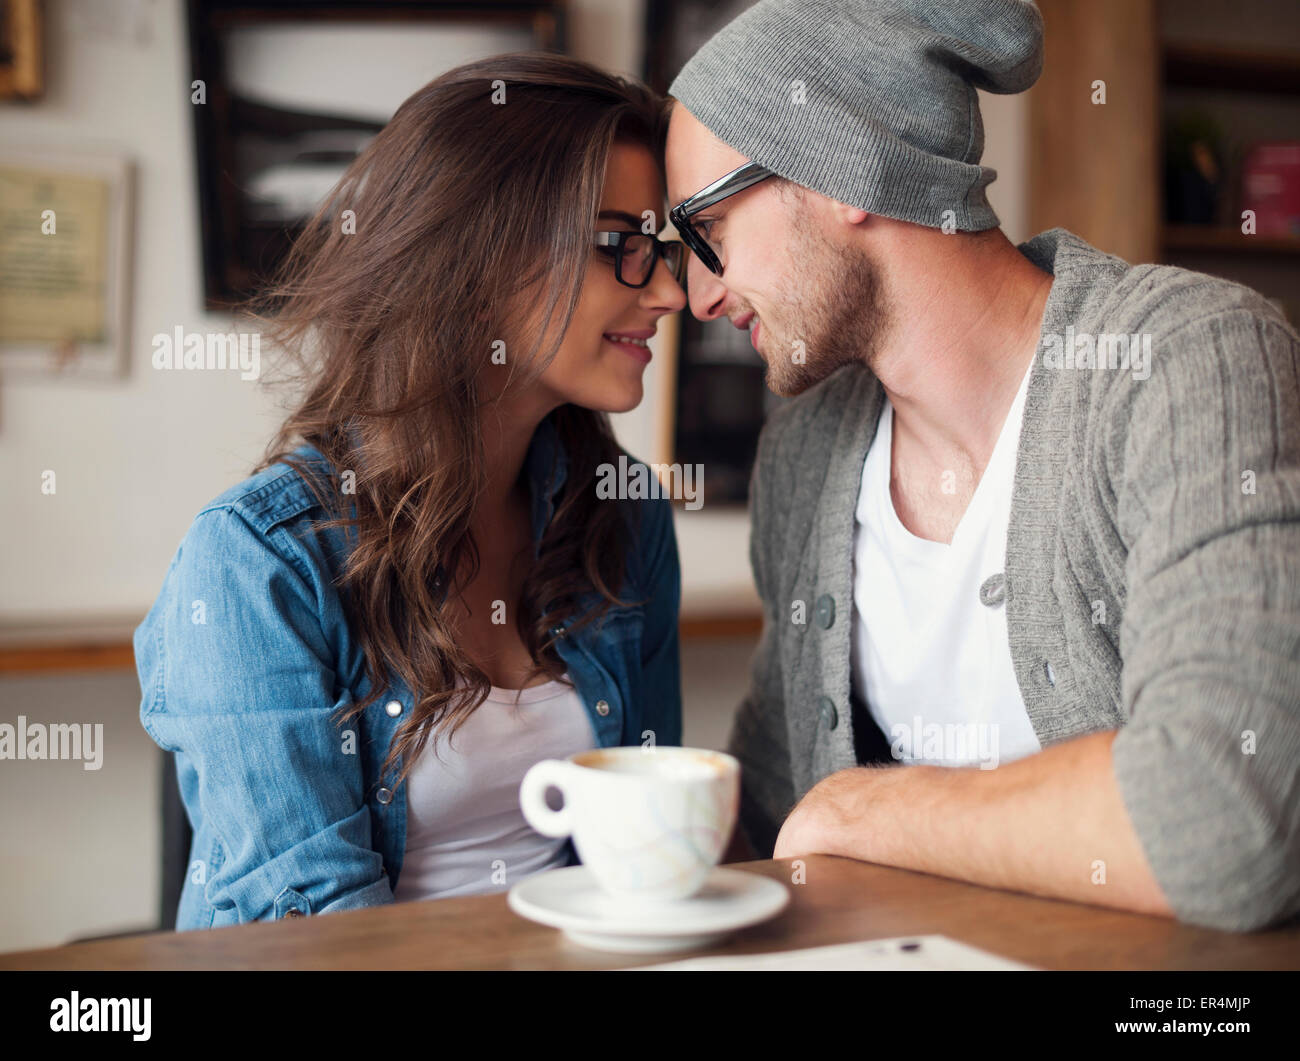 Portrait de couple aimant au café. Cracovie, Pologne Photo Stock